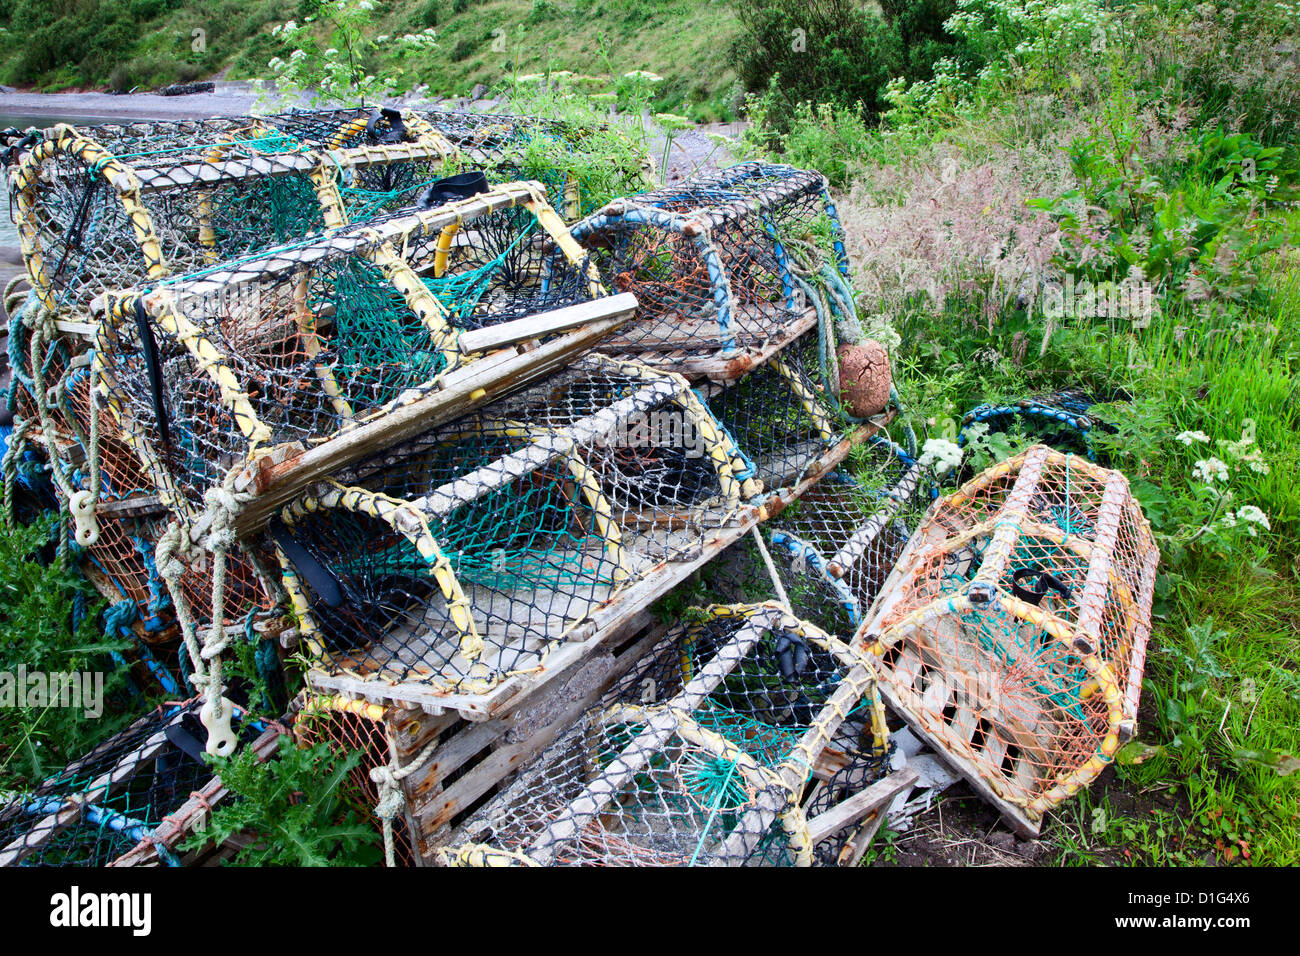 Old lobster pots at Catterline, Aberdeenshire, Scotland, United Kingdom, europe - Stock Image